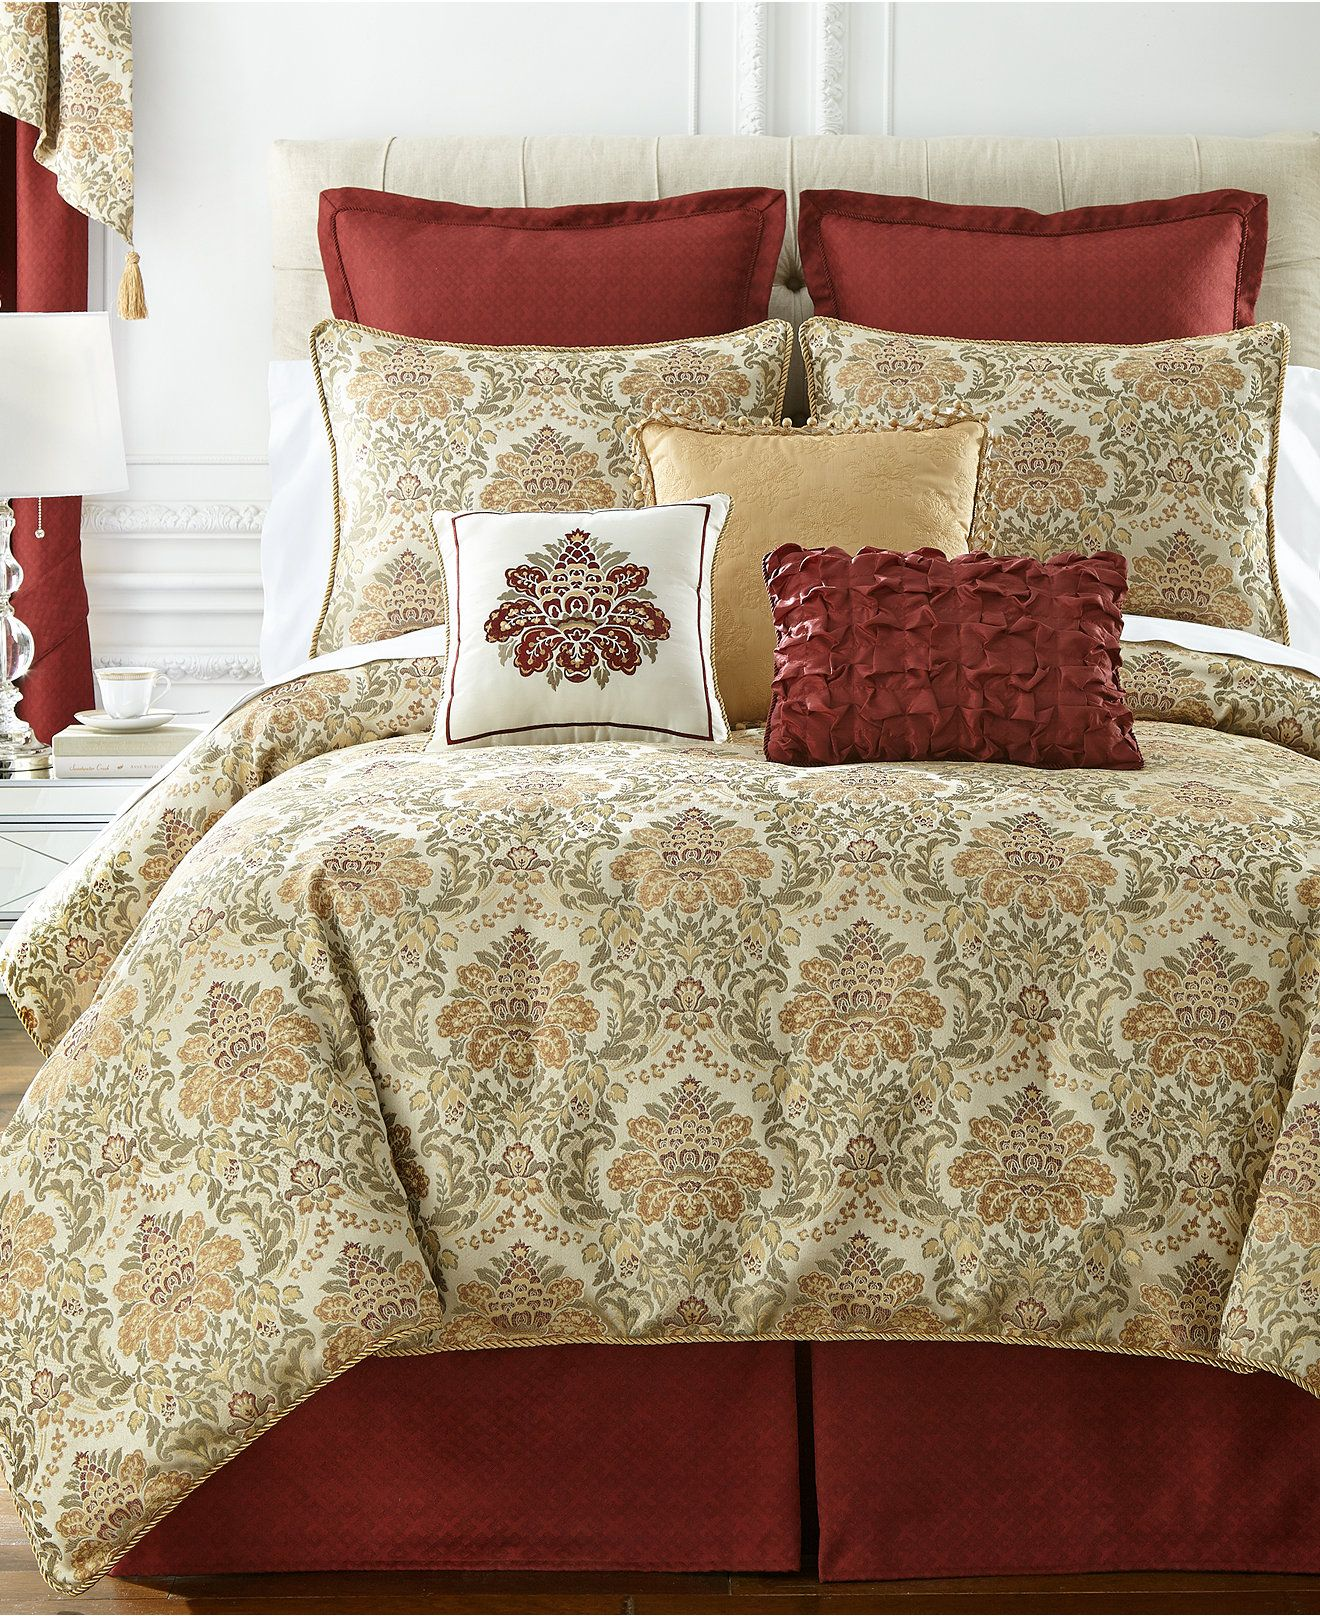 Bed bath and beyond beaumont - Waterford Beaumont Comforter Sets Bedding Collections Bed Bath Macy S